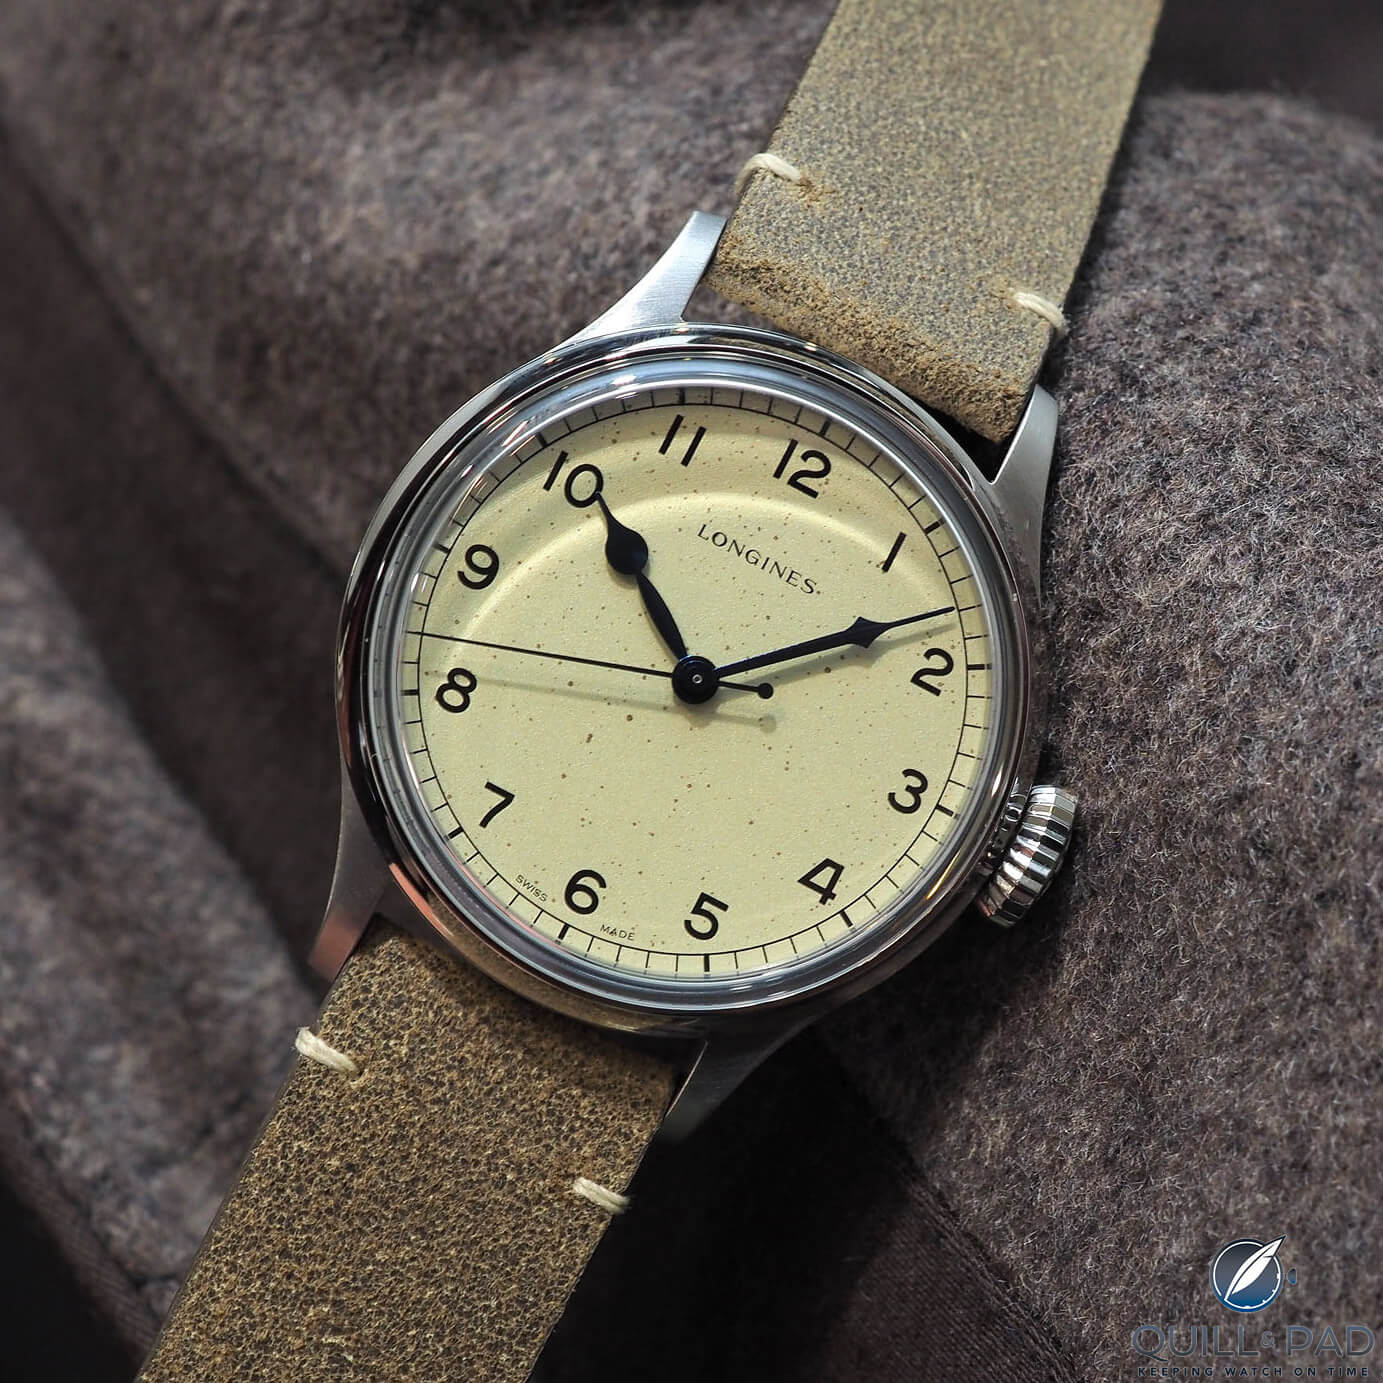 Longines Heritage Military (photo courtesy Dr. Magnus Bosse)